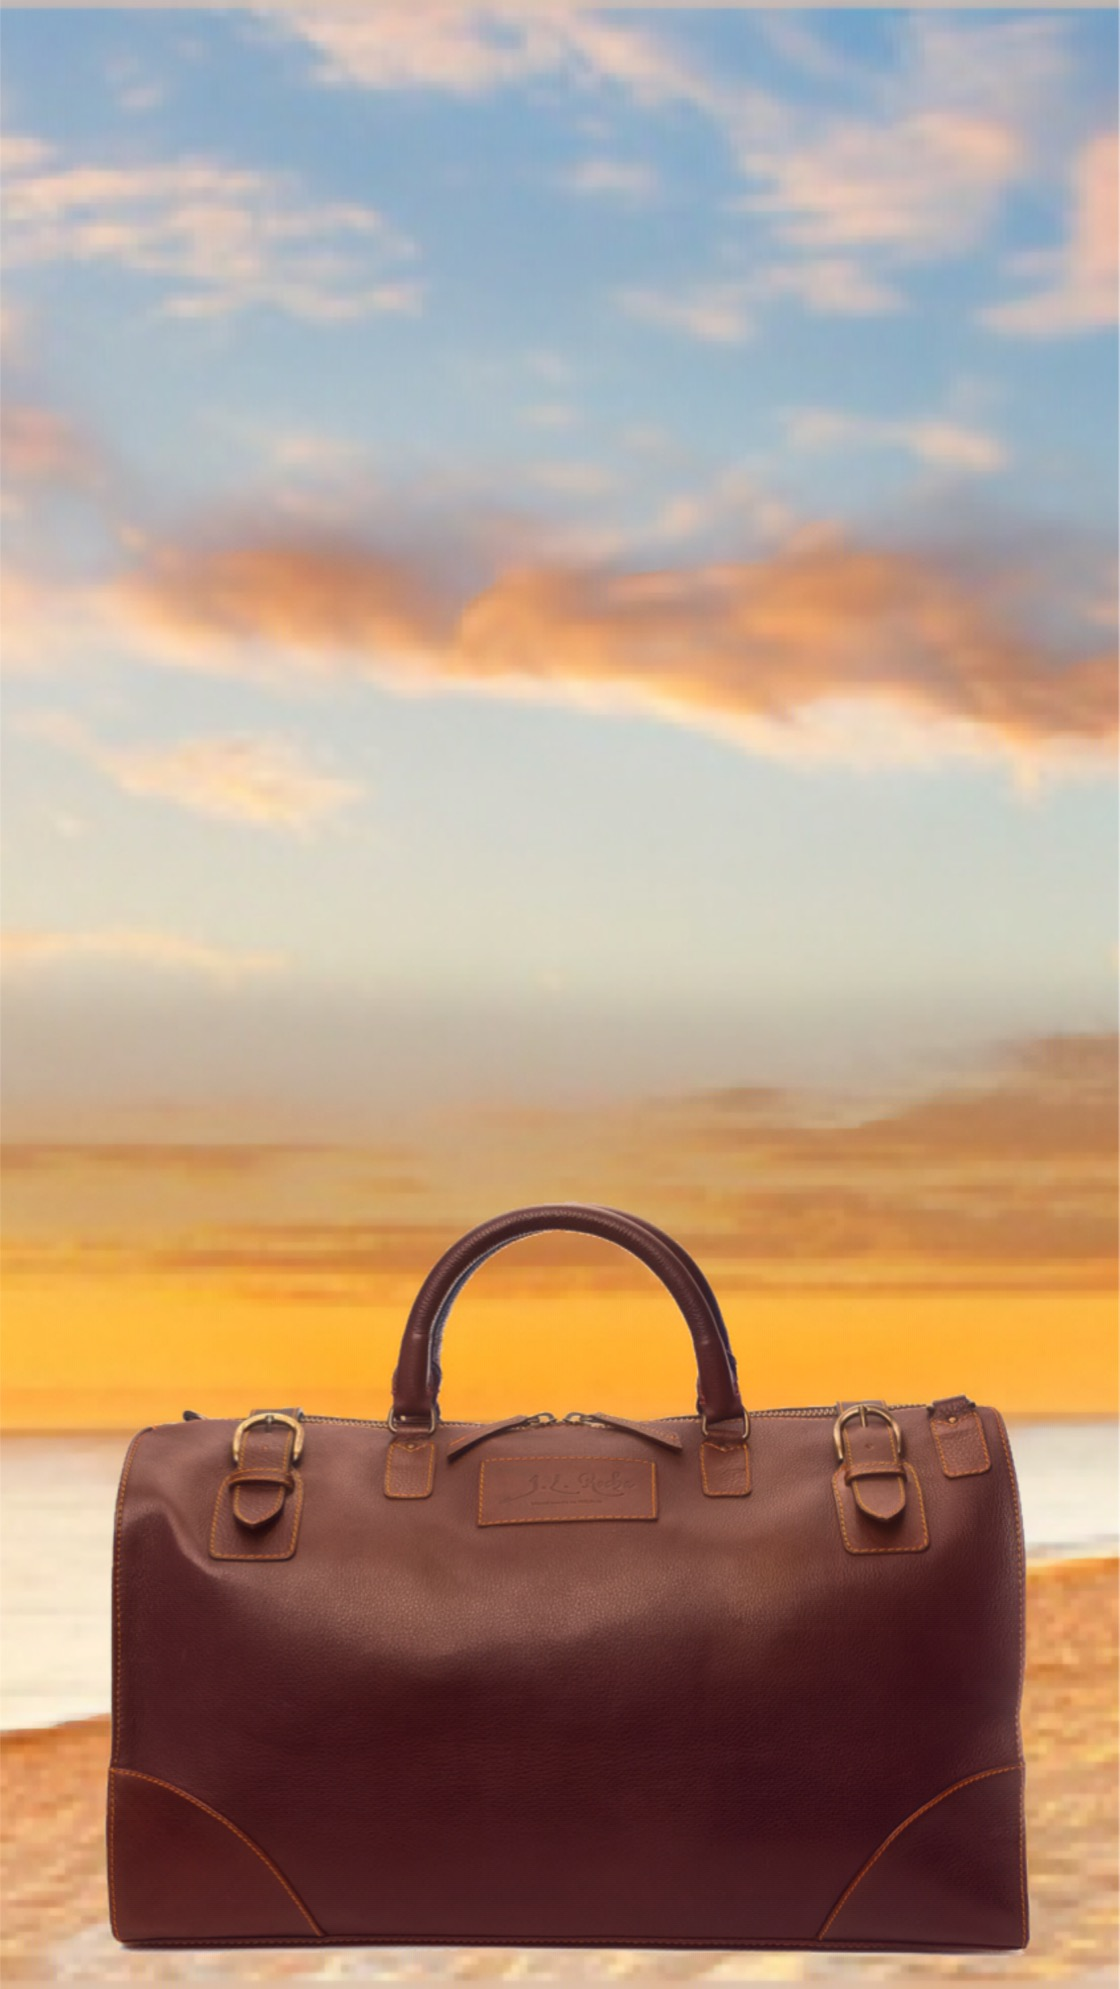 The Miguel Travel Bag - The perfect way to start and end any trip. You may go far and wide but you know that what matters most anywhere is reliability and durability. Everything you need will stylish and safe when it's nestled in this pebble grain companion.